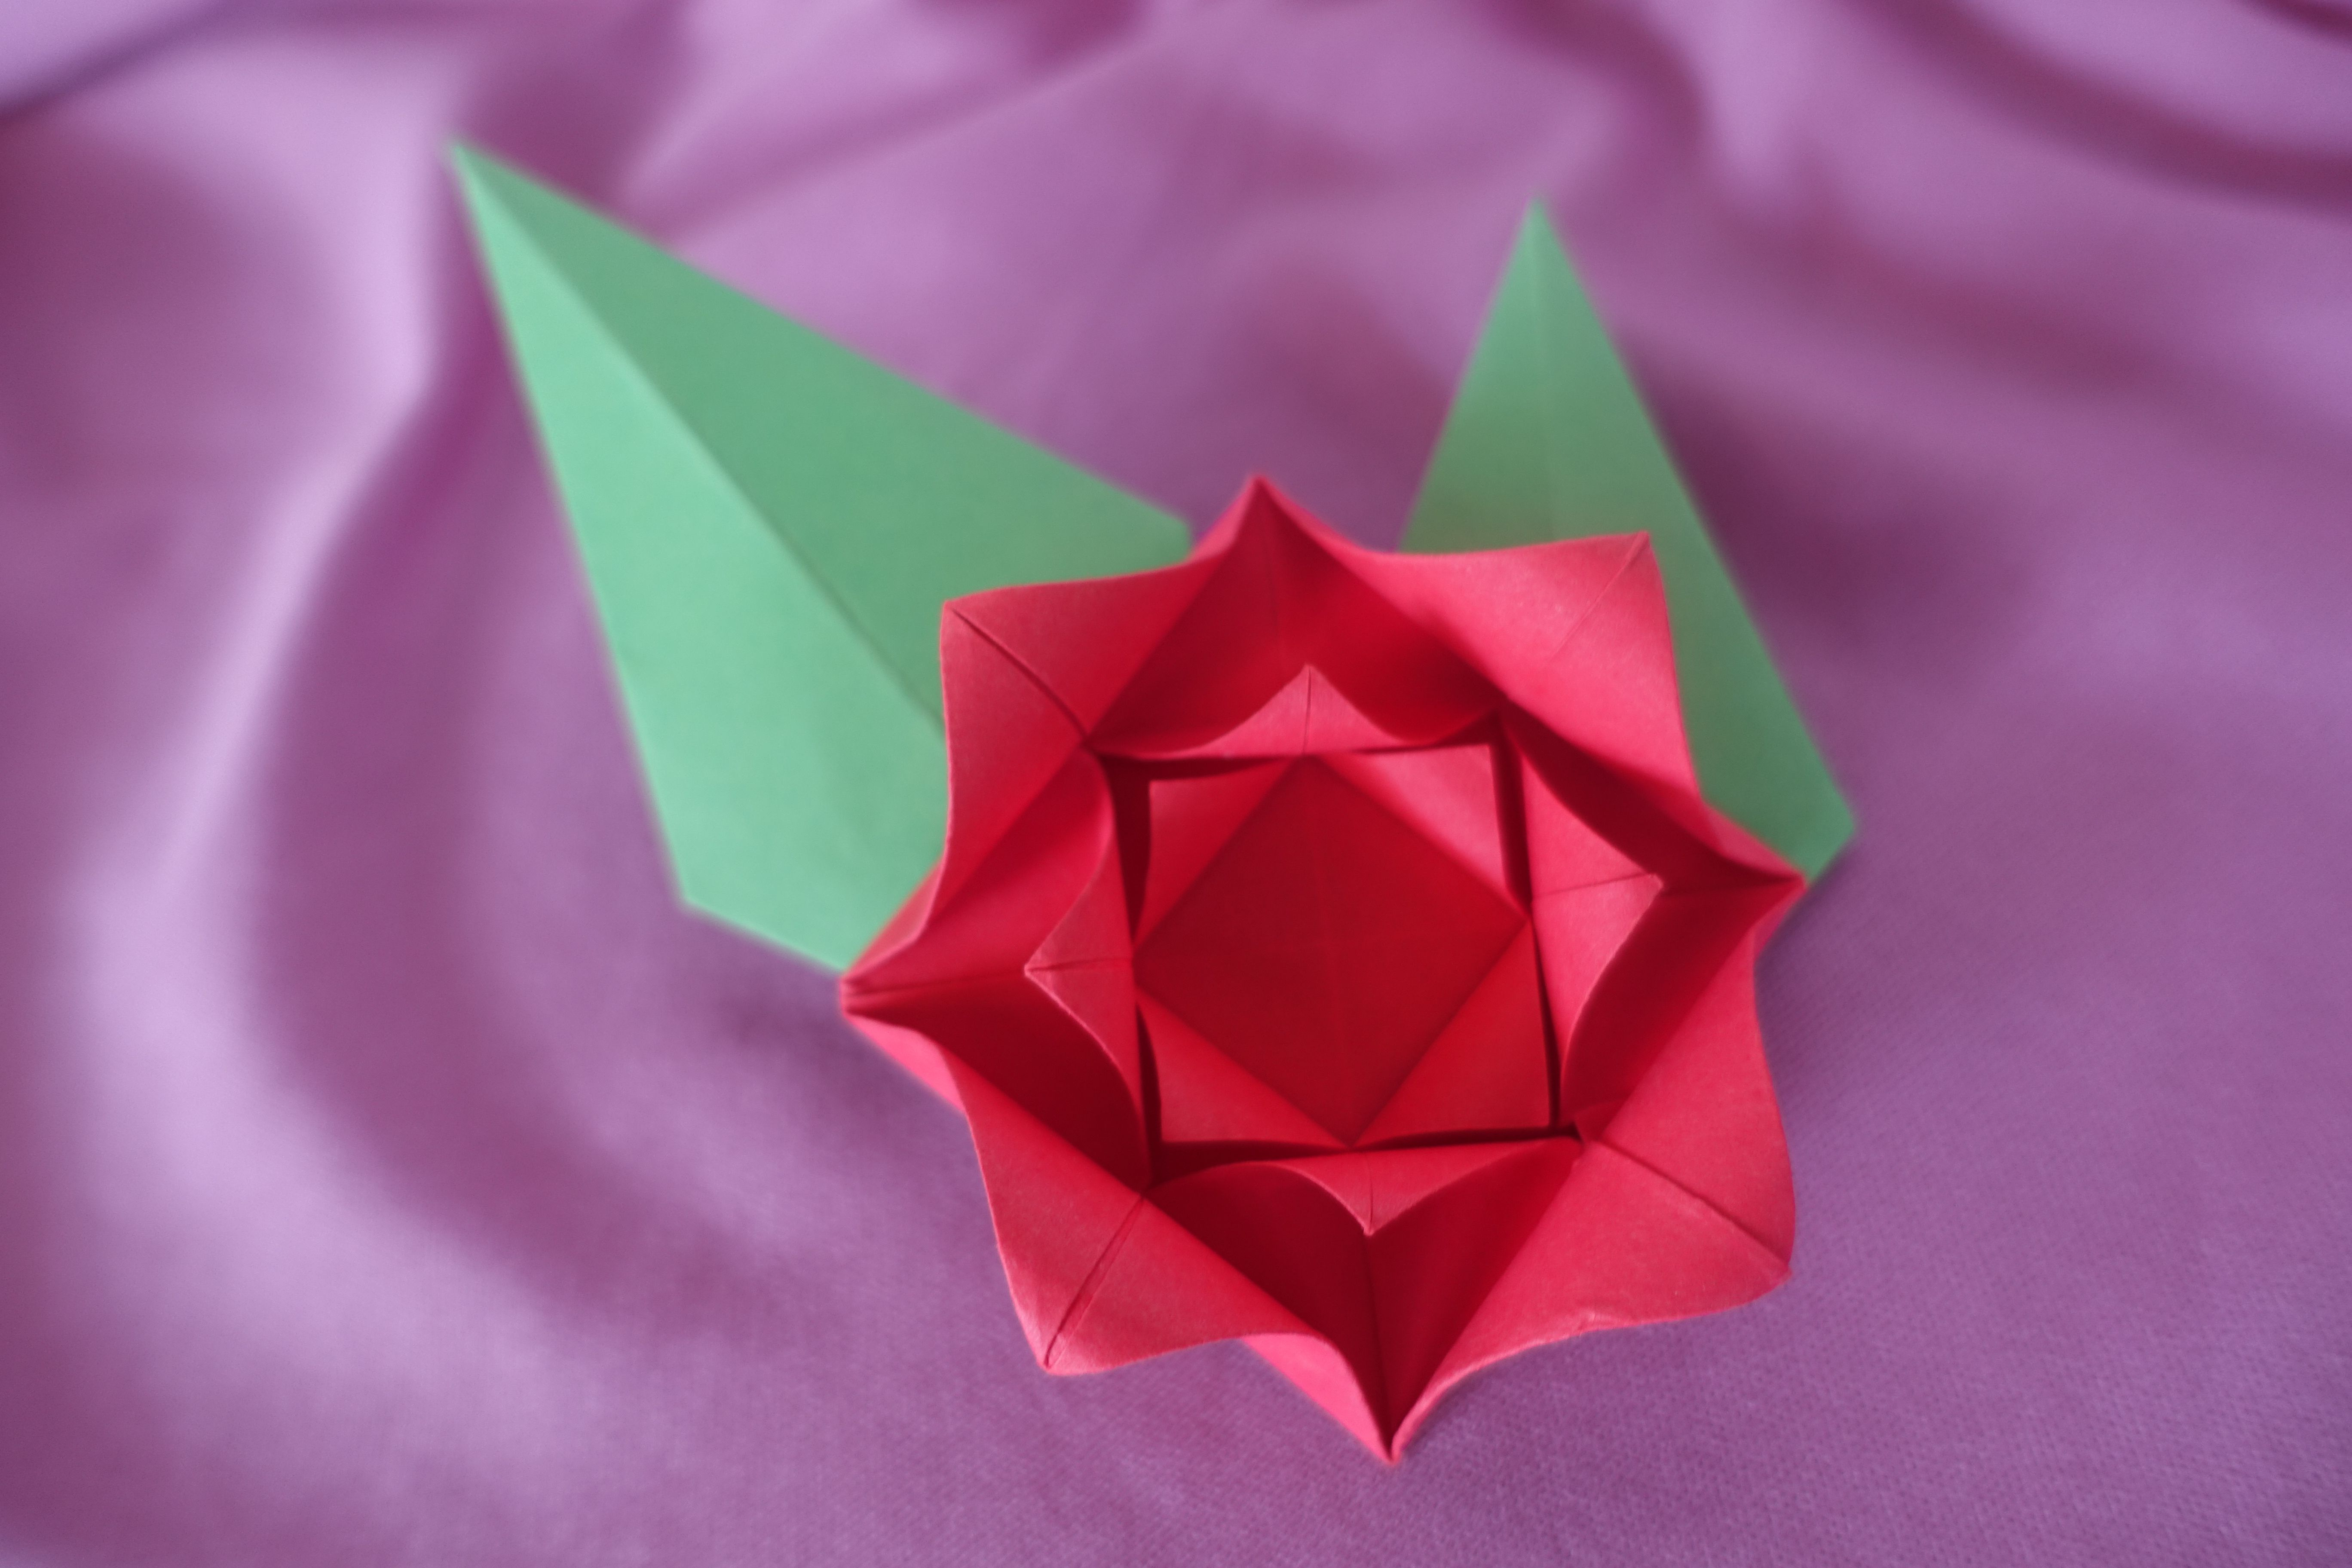 How To Origami Rose Make An Easy Origami Rose